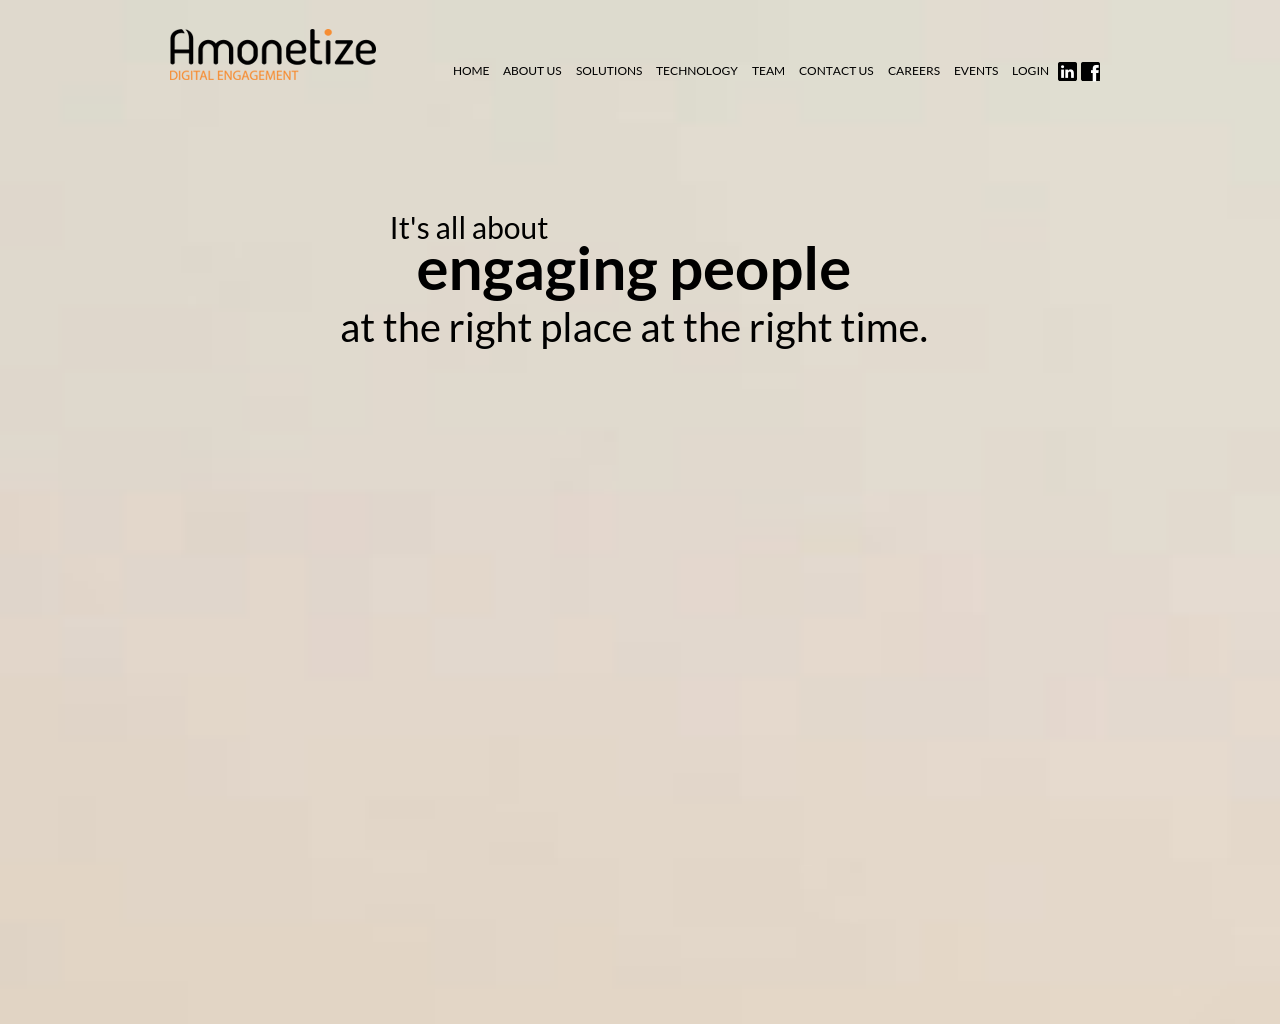 Amonetize-Advertising-Reviews-Pricing